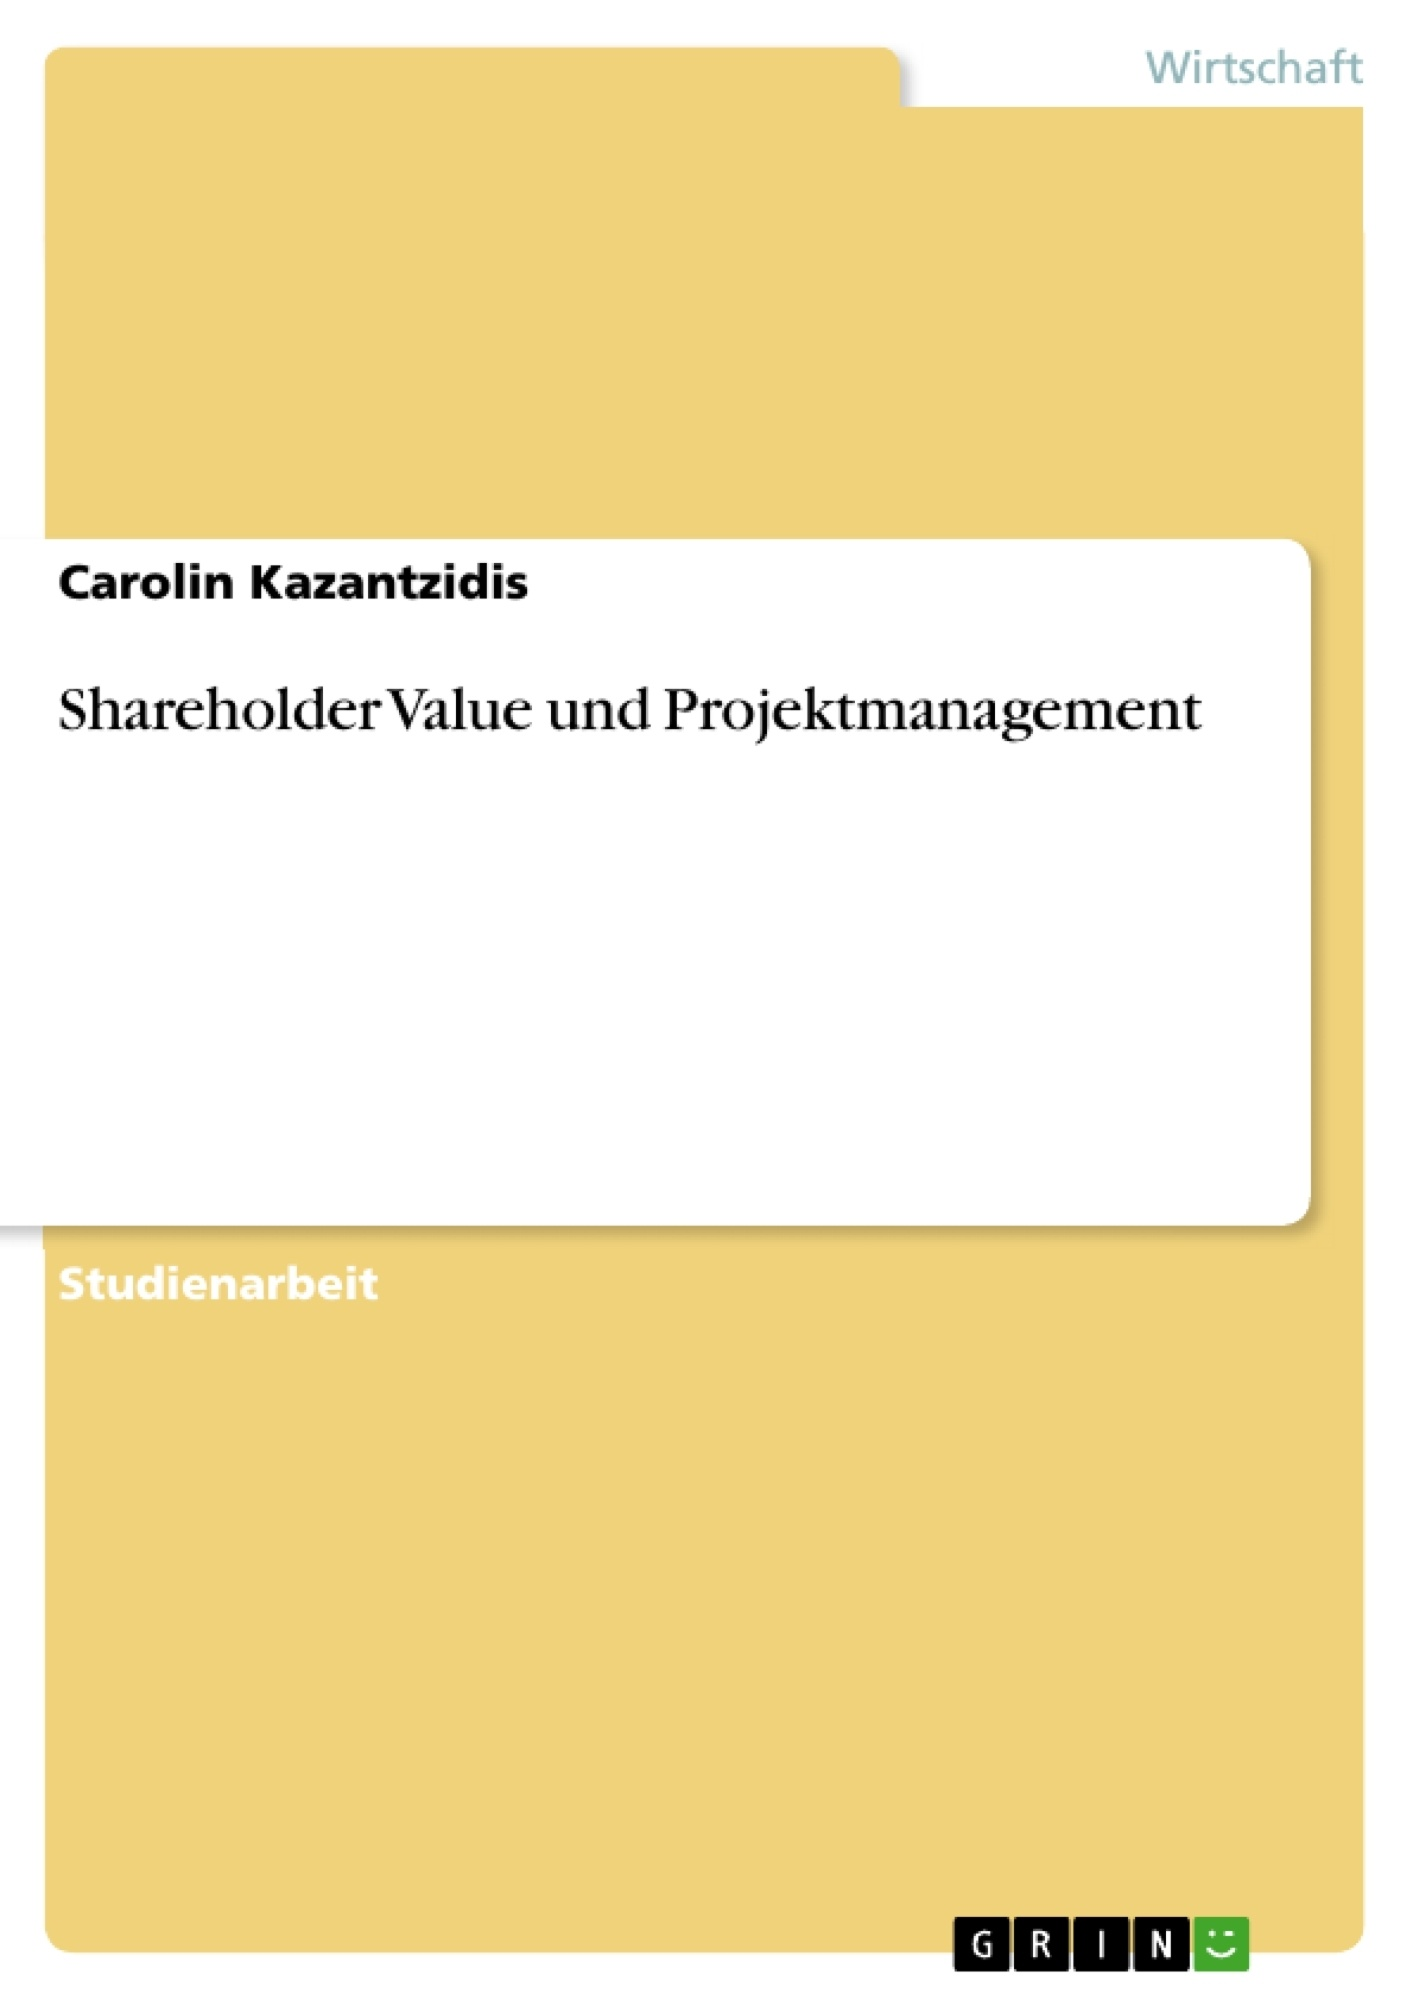 Titel: Shareholder Value und Projektmanagement